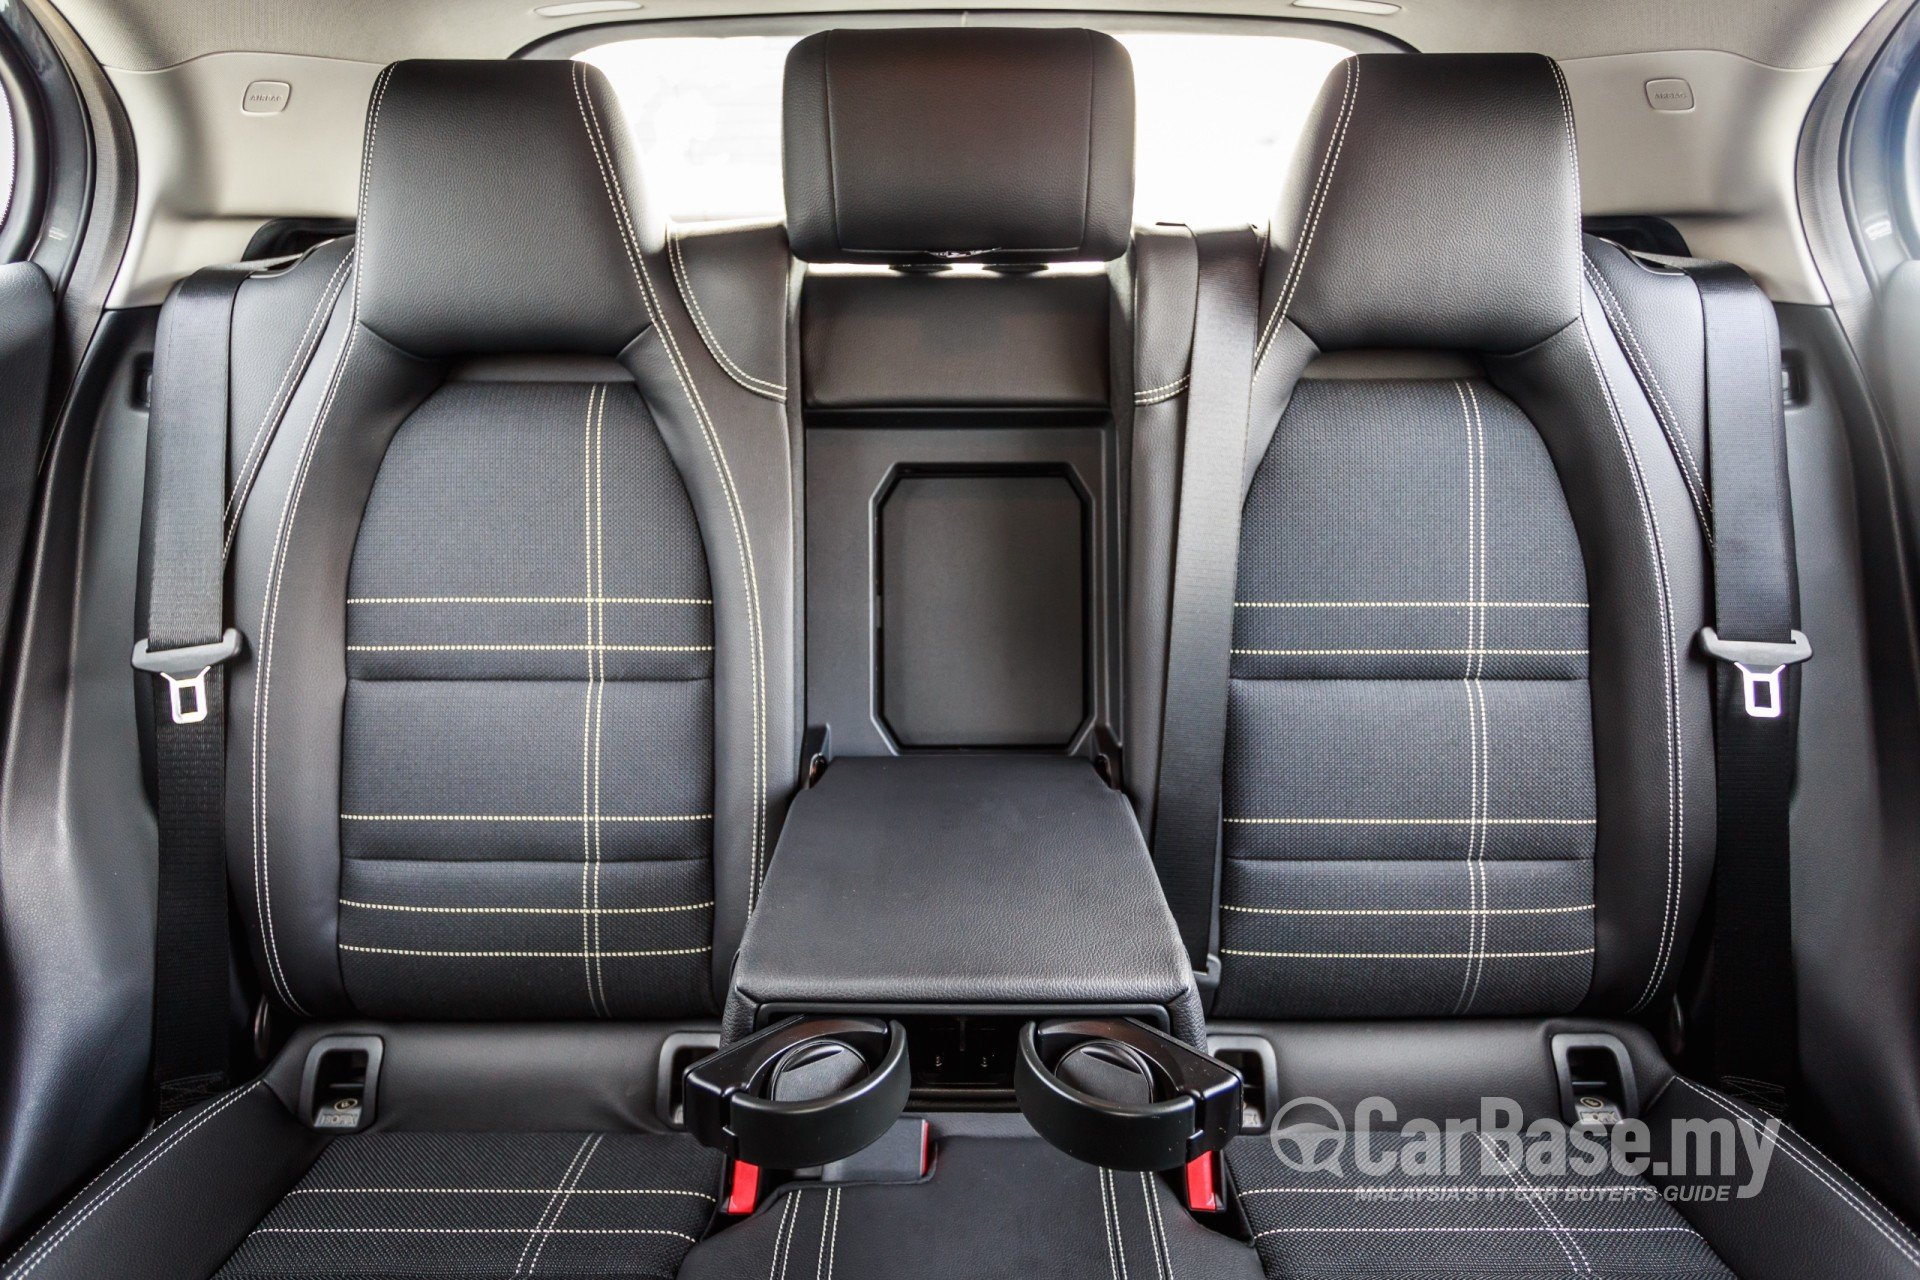 Mercedes Benz Gla X156 2014 Interior Image 16784 In Malaysia Reviews Specs Prices